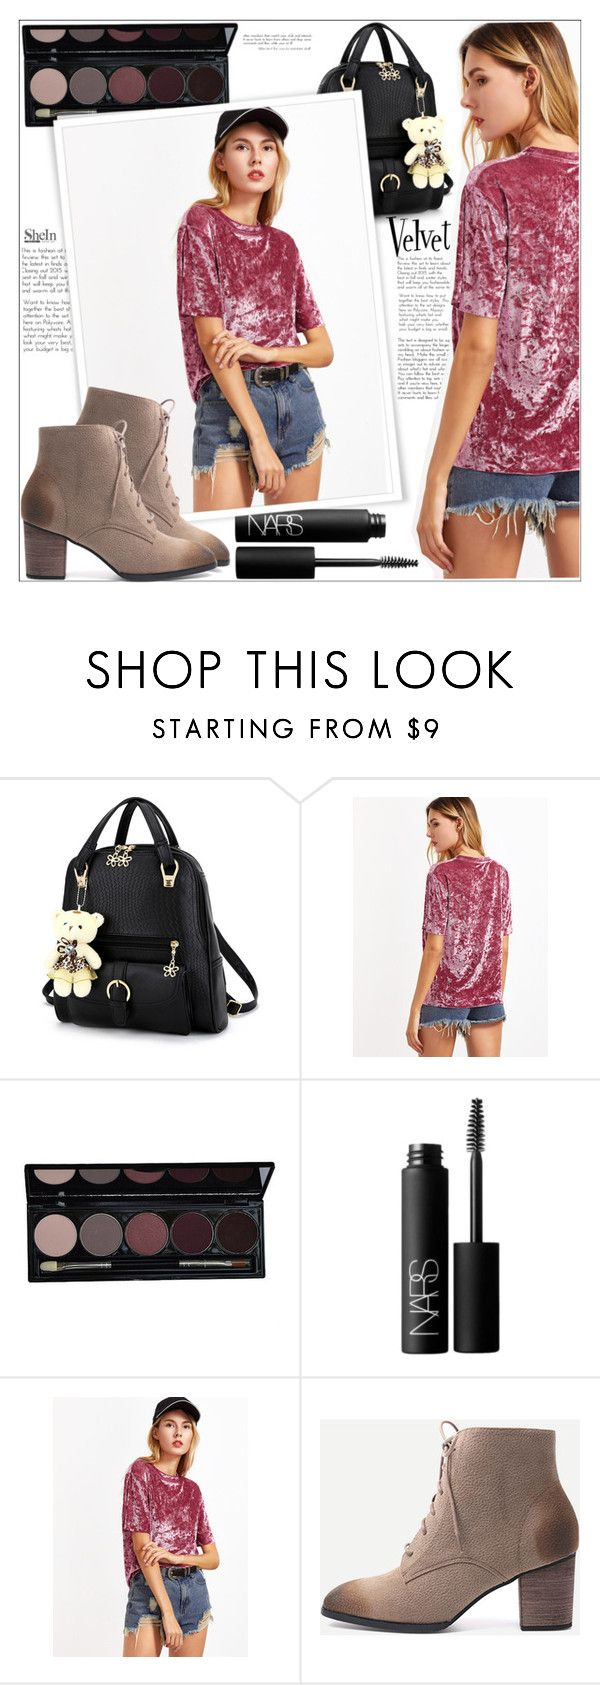 """""""Ootd Saturday"""" by mycherryblossom ❤ liked on Polyvore featuring NARS Cosmetics, velvet, polyvoreeditorial and polyvorestyle"""